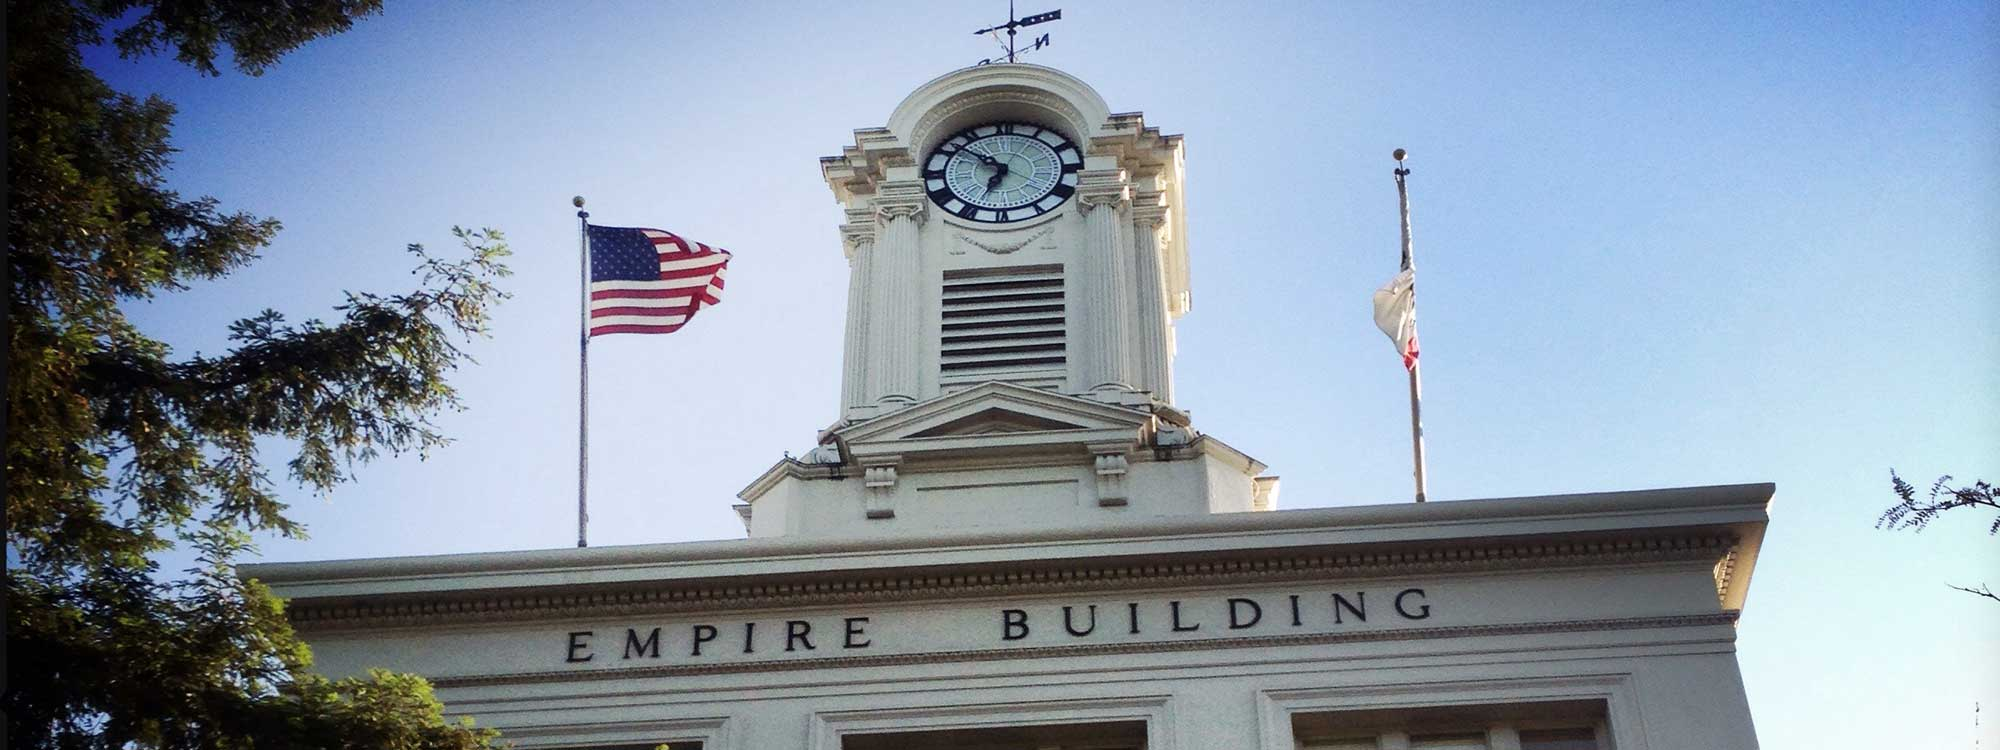 Empire.Building.Website.Header.jpg